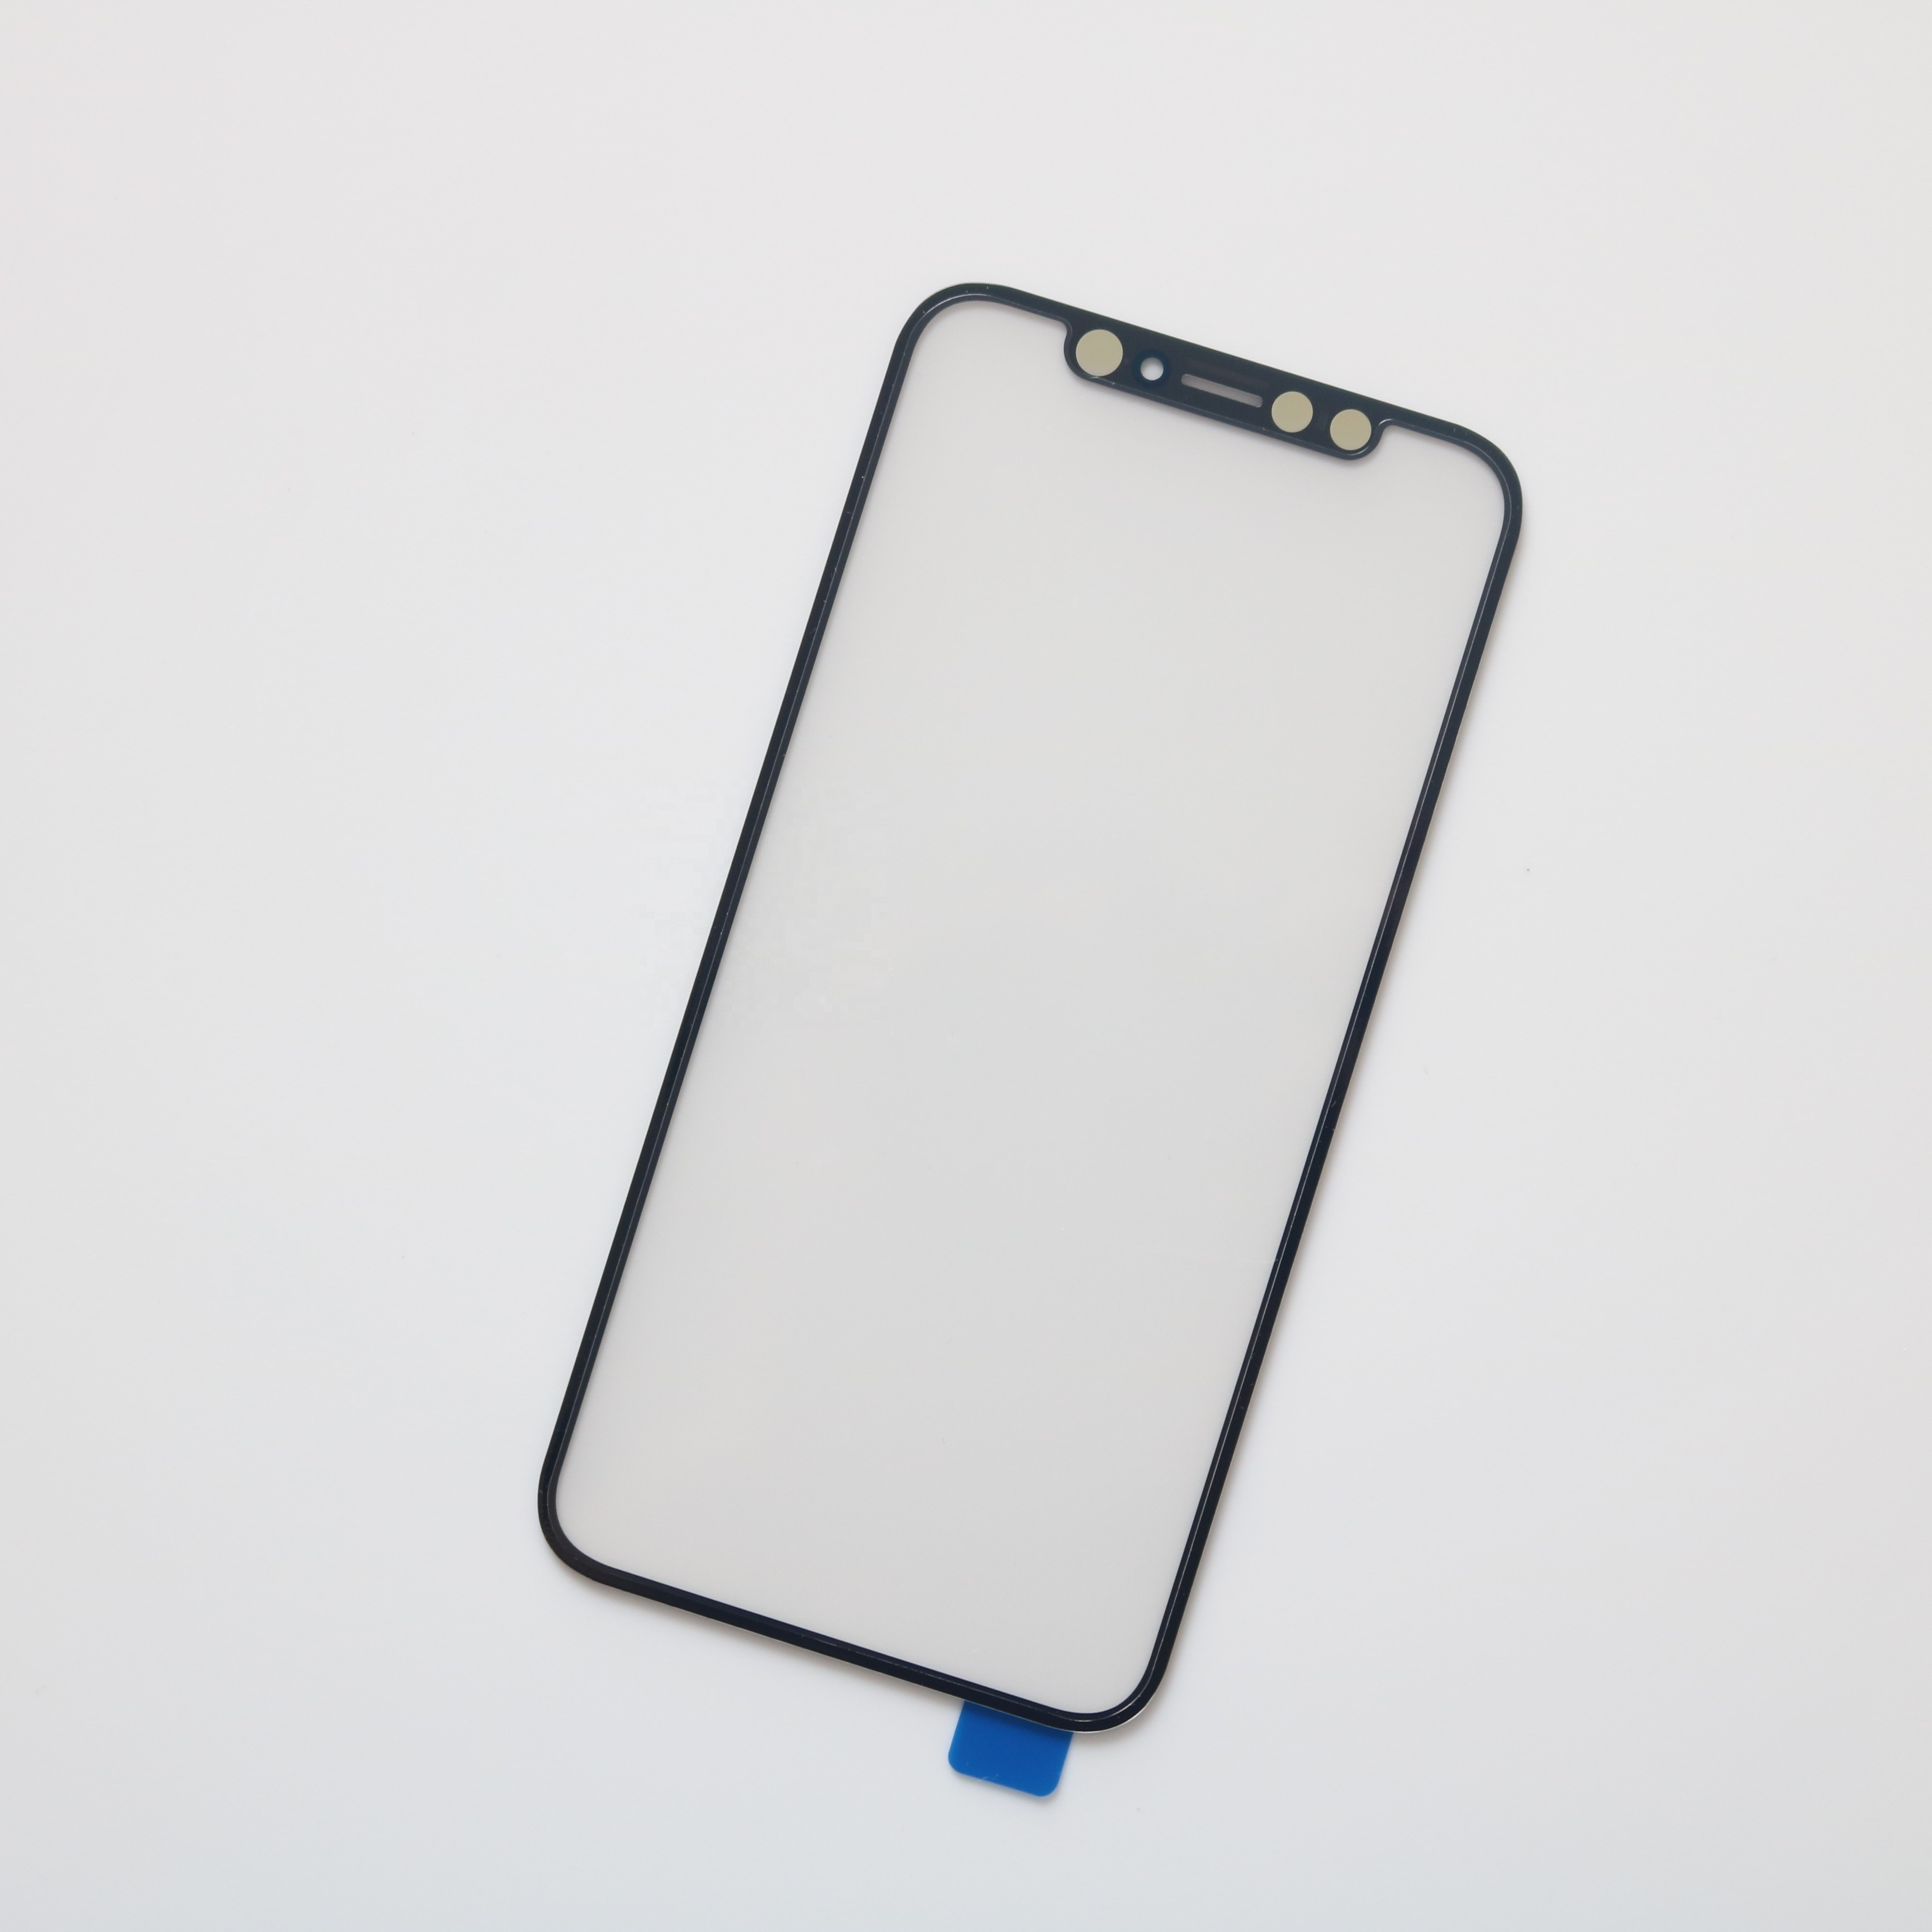 2 in 1 touch screen front glass lens with OCA dry glue for <strong>iPhone</strong> X XS XR 11 Pro Max